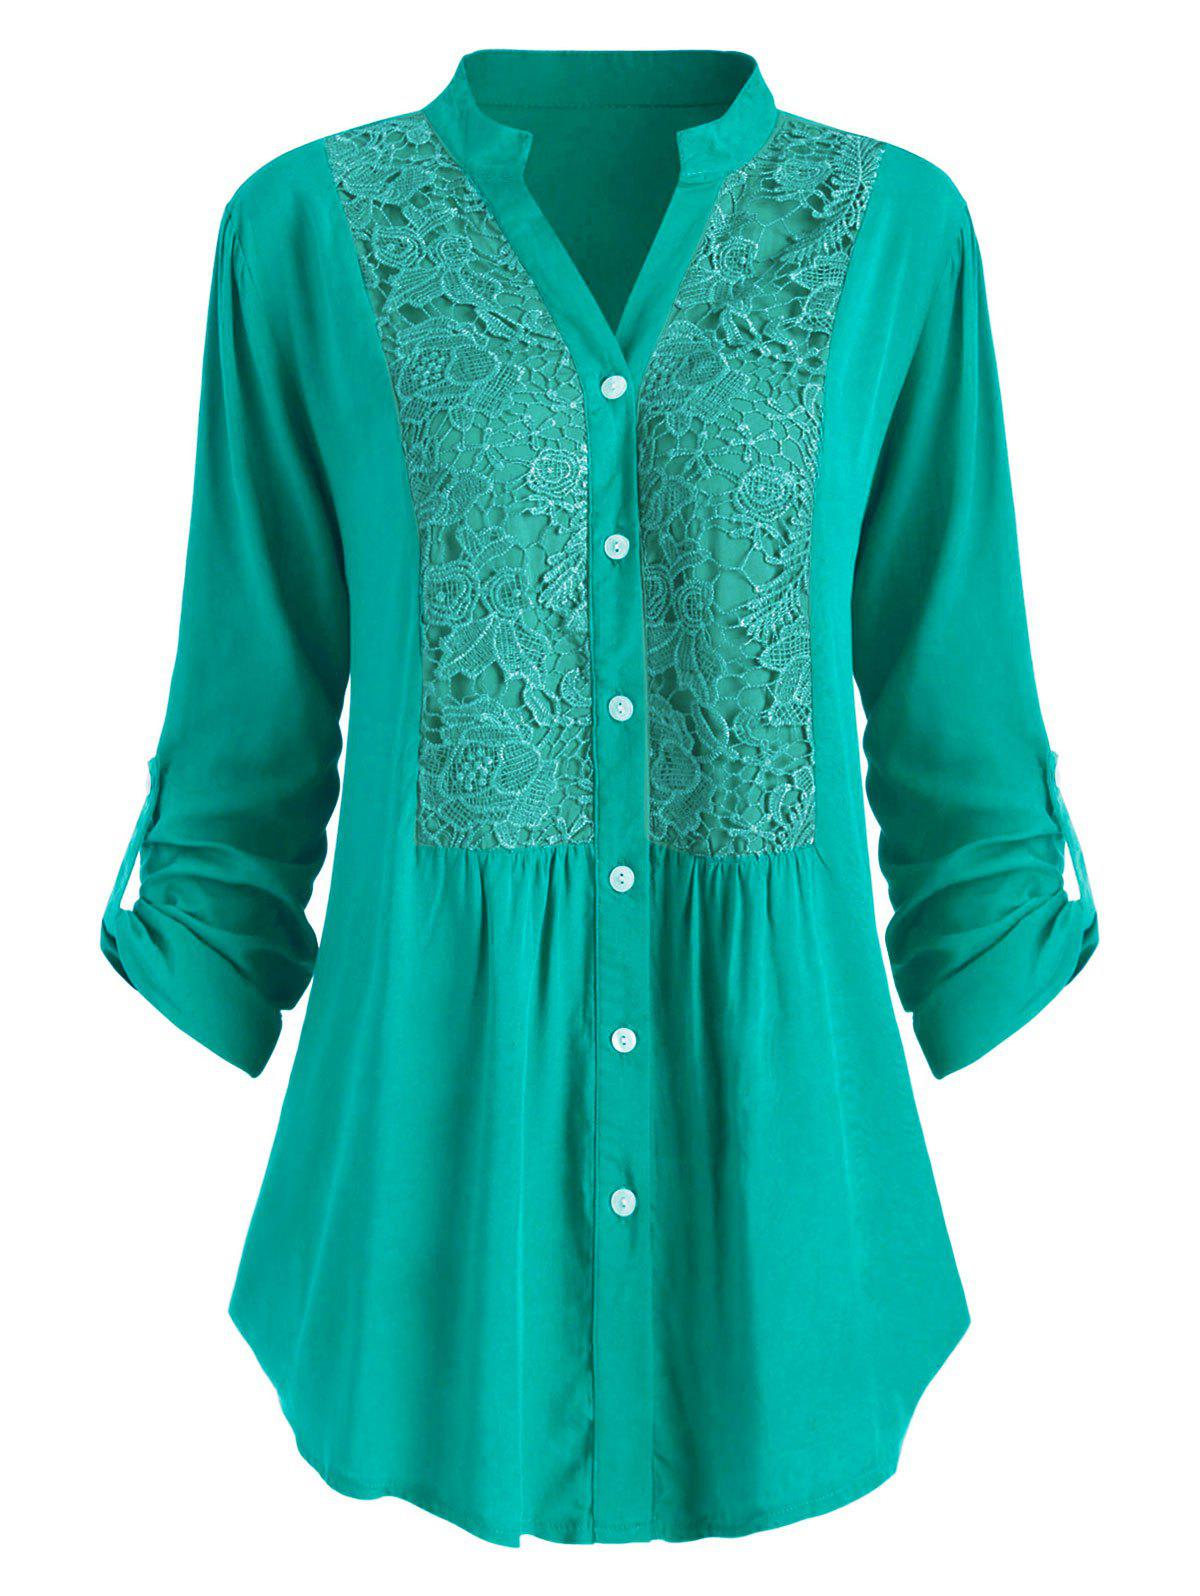 Plus Size Lace Crochet  Roll Up Sleeve Shirt - MACAW BLUE GREEN 4X